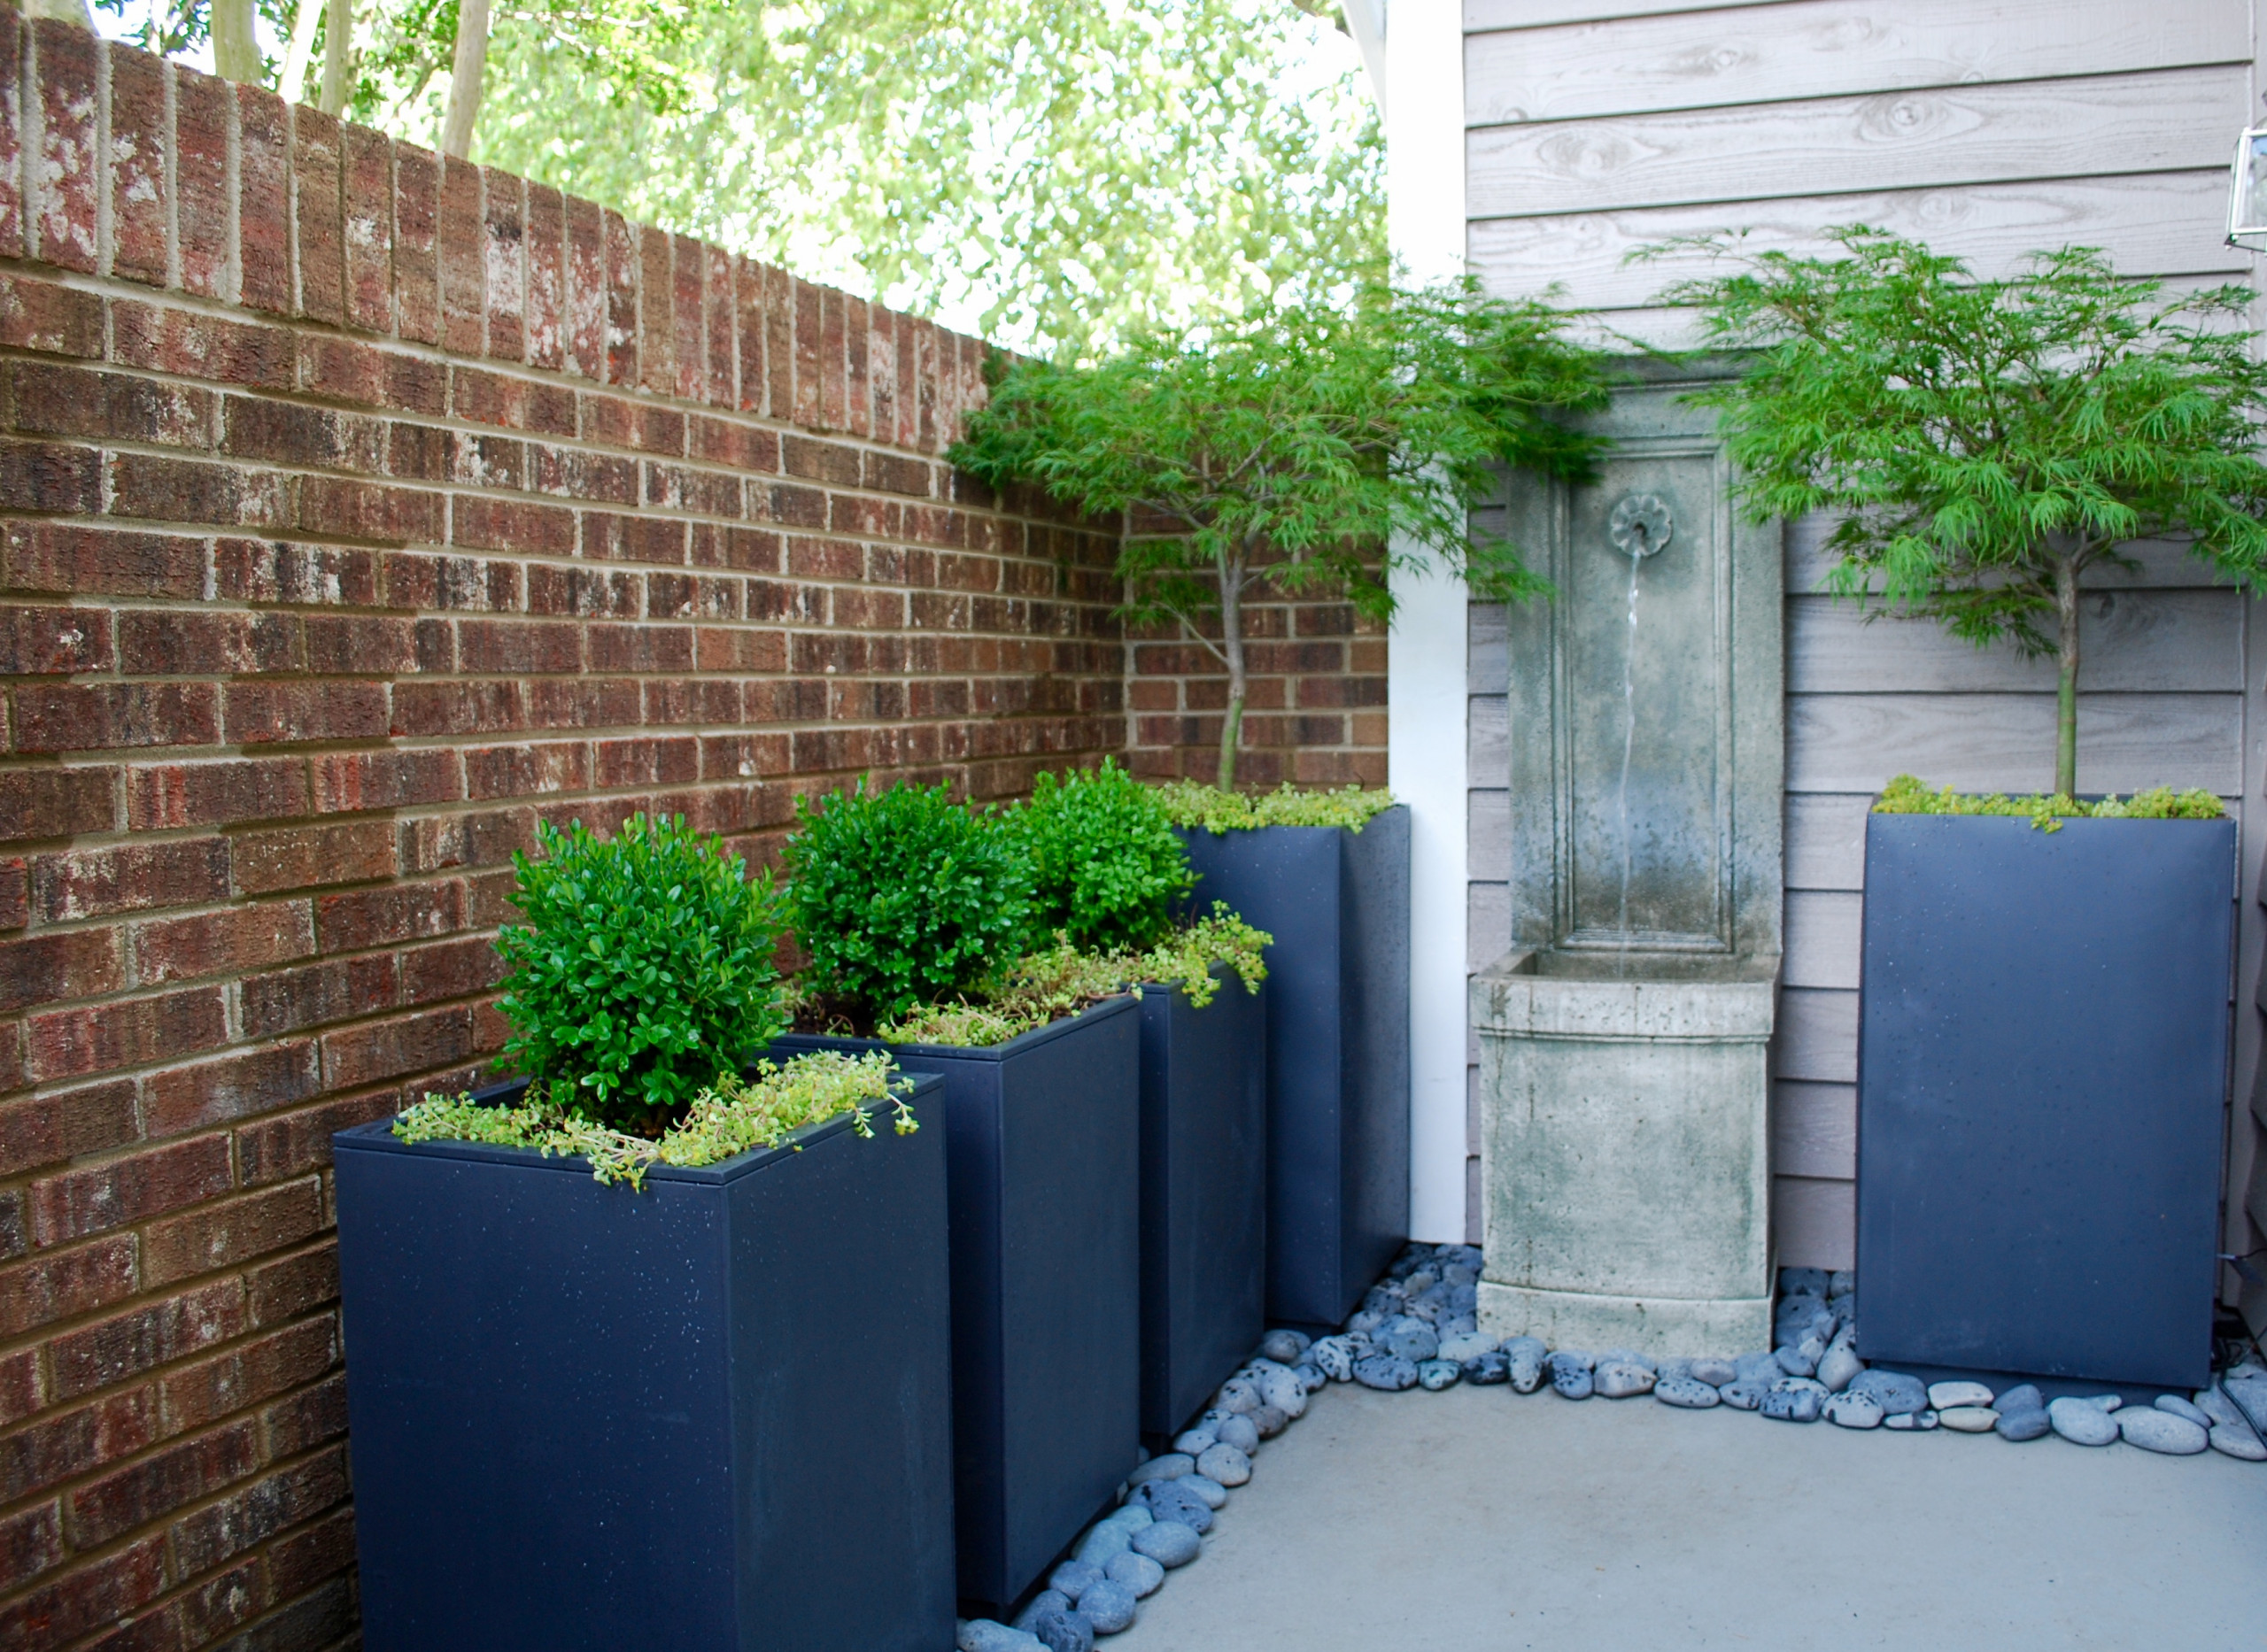 South Charlotte Condo Courtyard Redesign